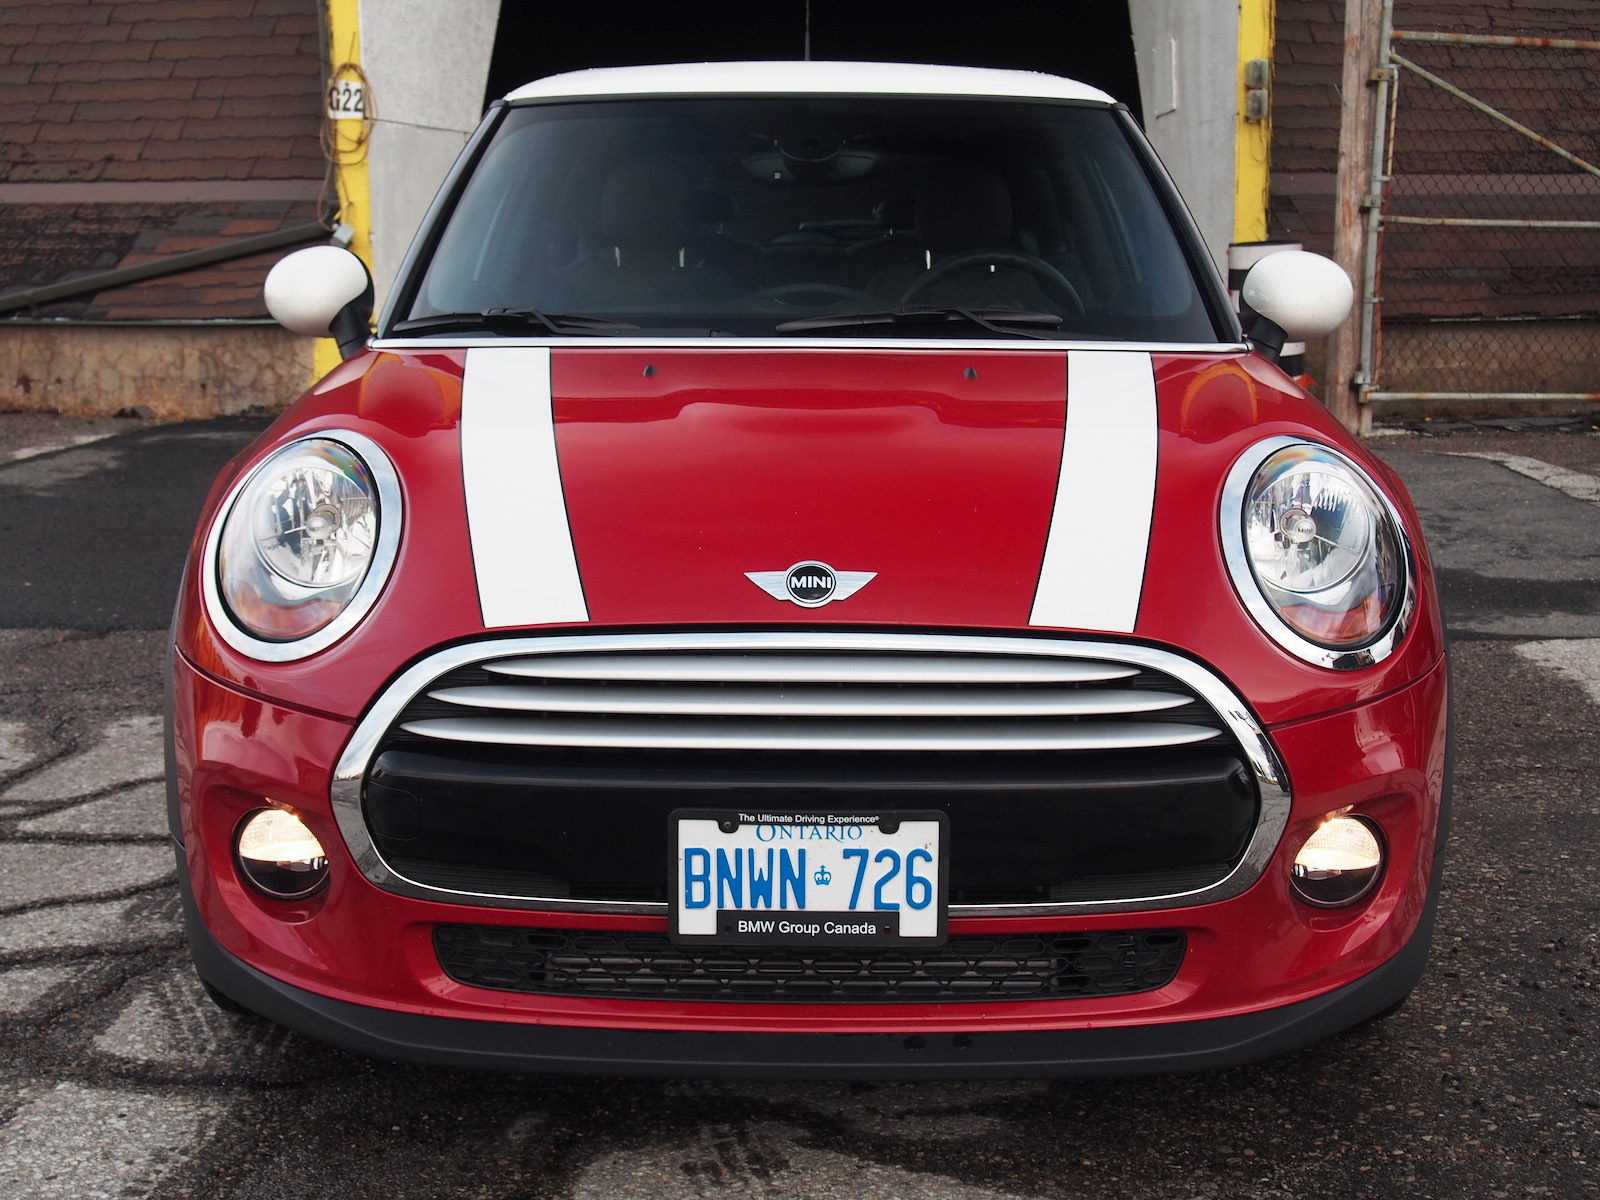 Mini Cooper Canada Price >> 2014 Mini Cooper Hatchback Review Cars Photos Test Drives And